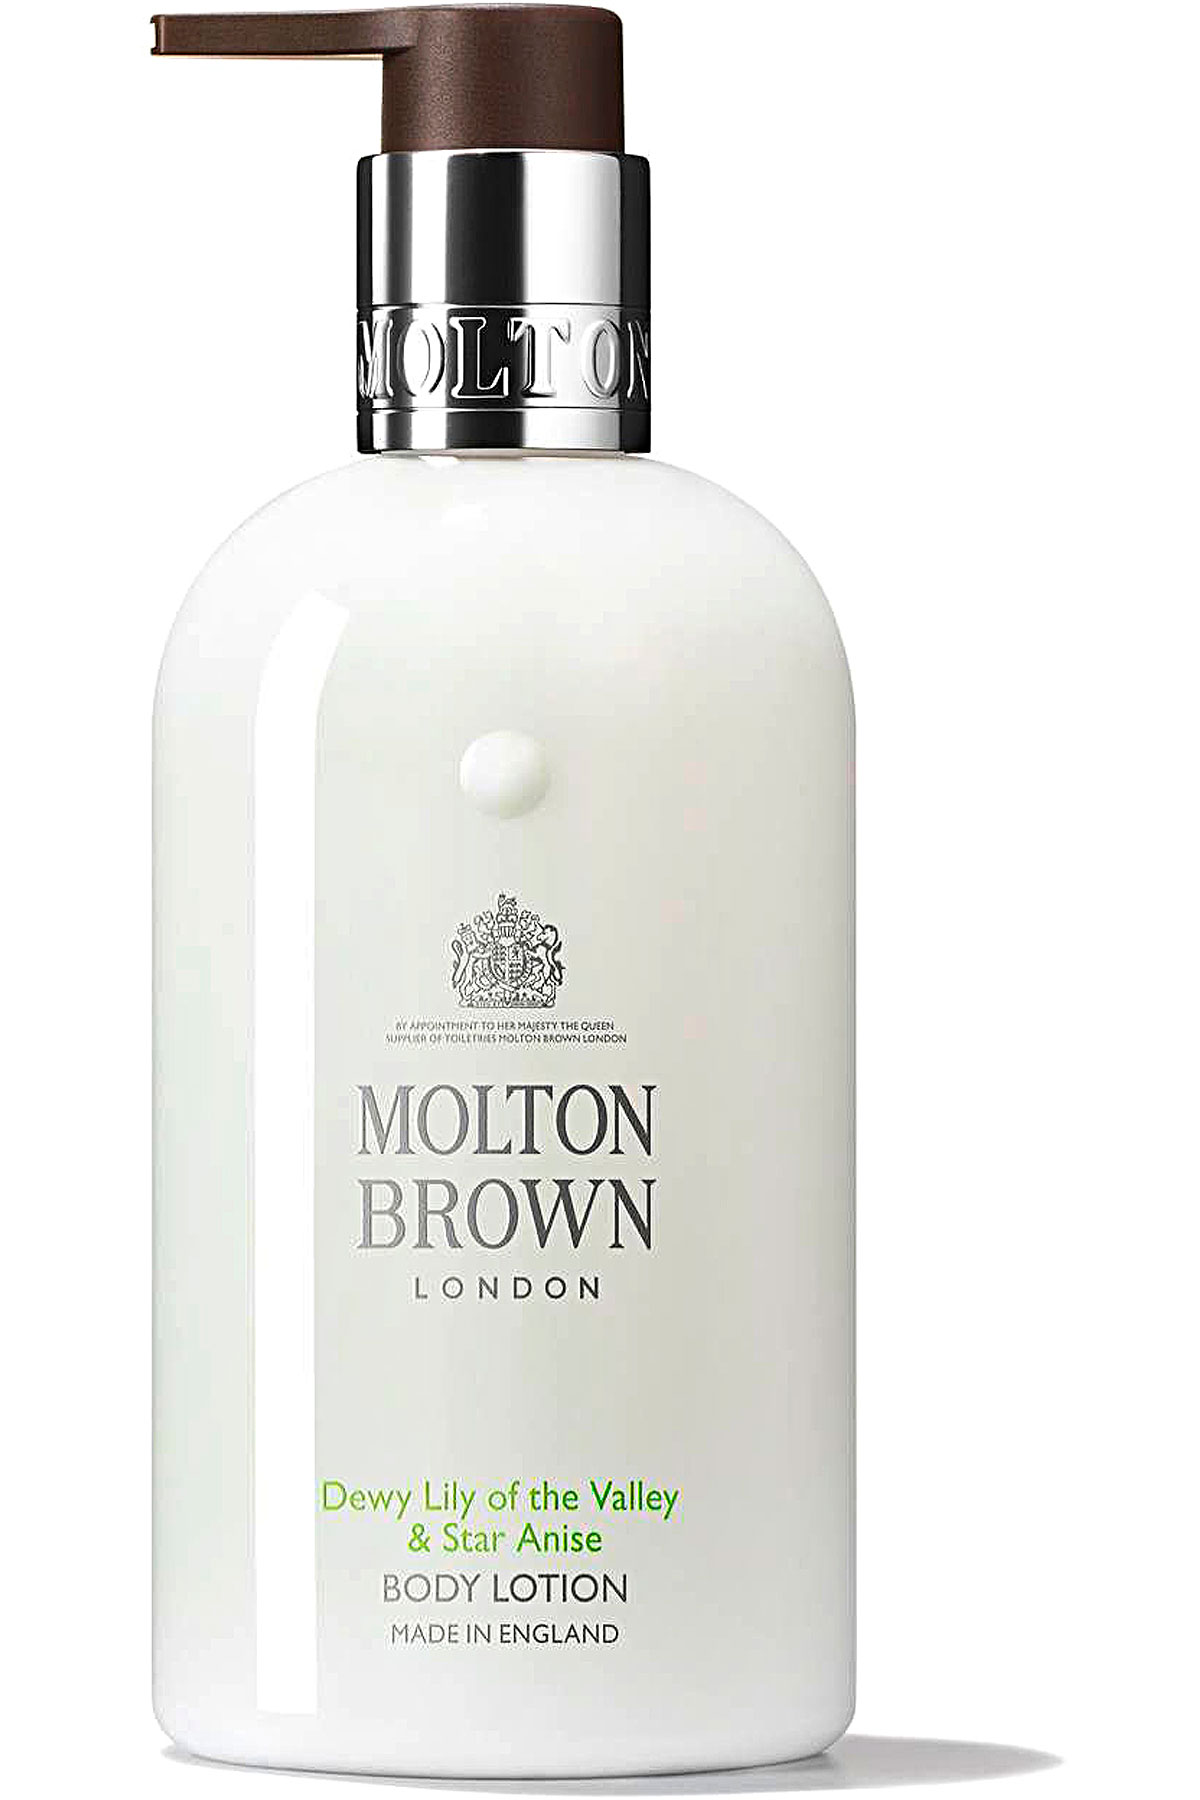 Molton Brown Beauty for Women, Dewy Lily Of The Valley & Star Anise - Body Lotion - 300 Ml, 2019, 300 ml